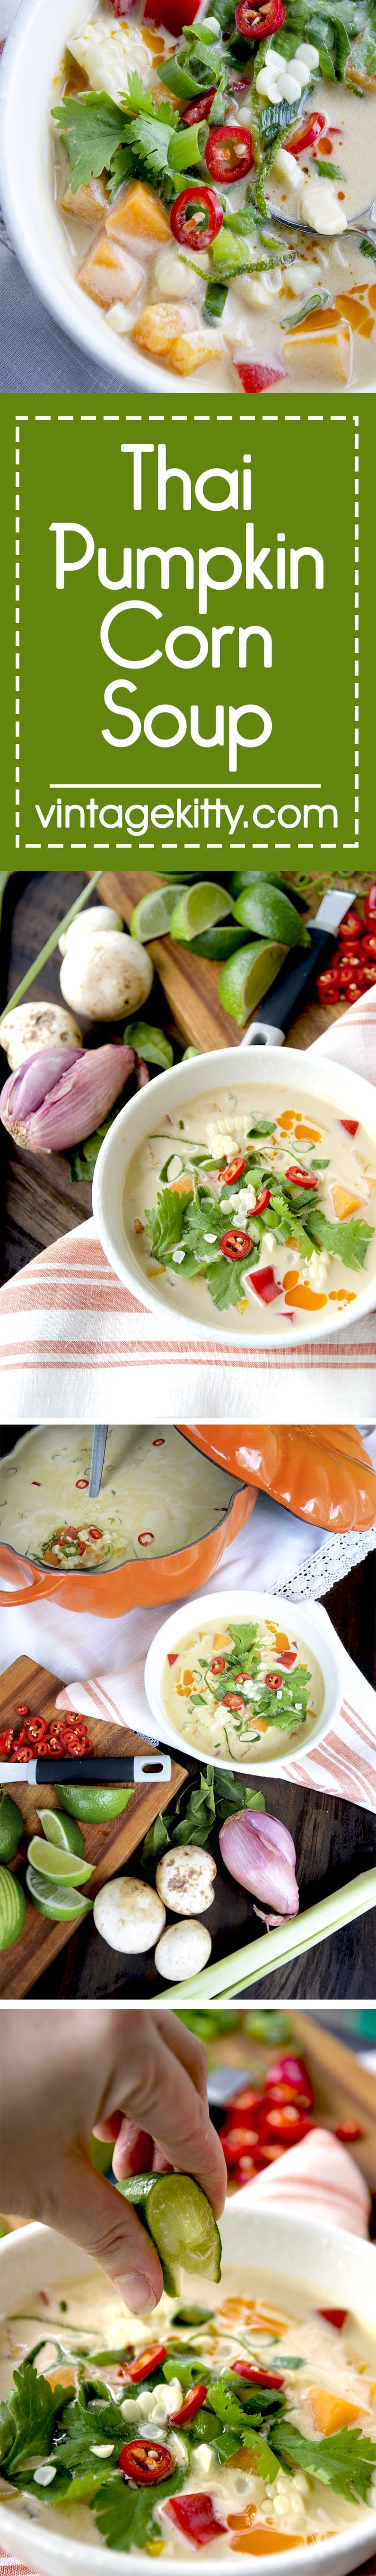 This creamy and satisfying Thai Pumpkin Corn Soup combines a bounty of fresh veggies and can accommodate omnivore, vegetarian and vegan diets. | vintagekitty.com